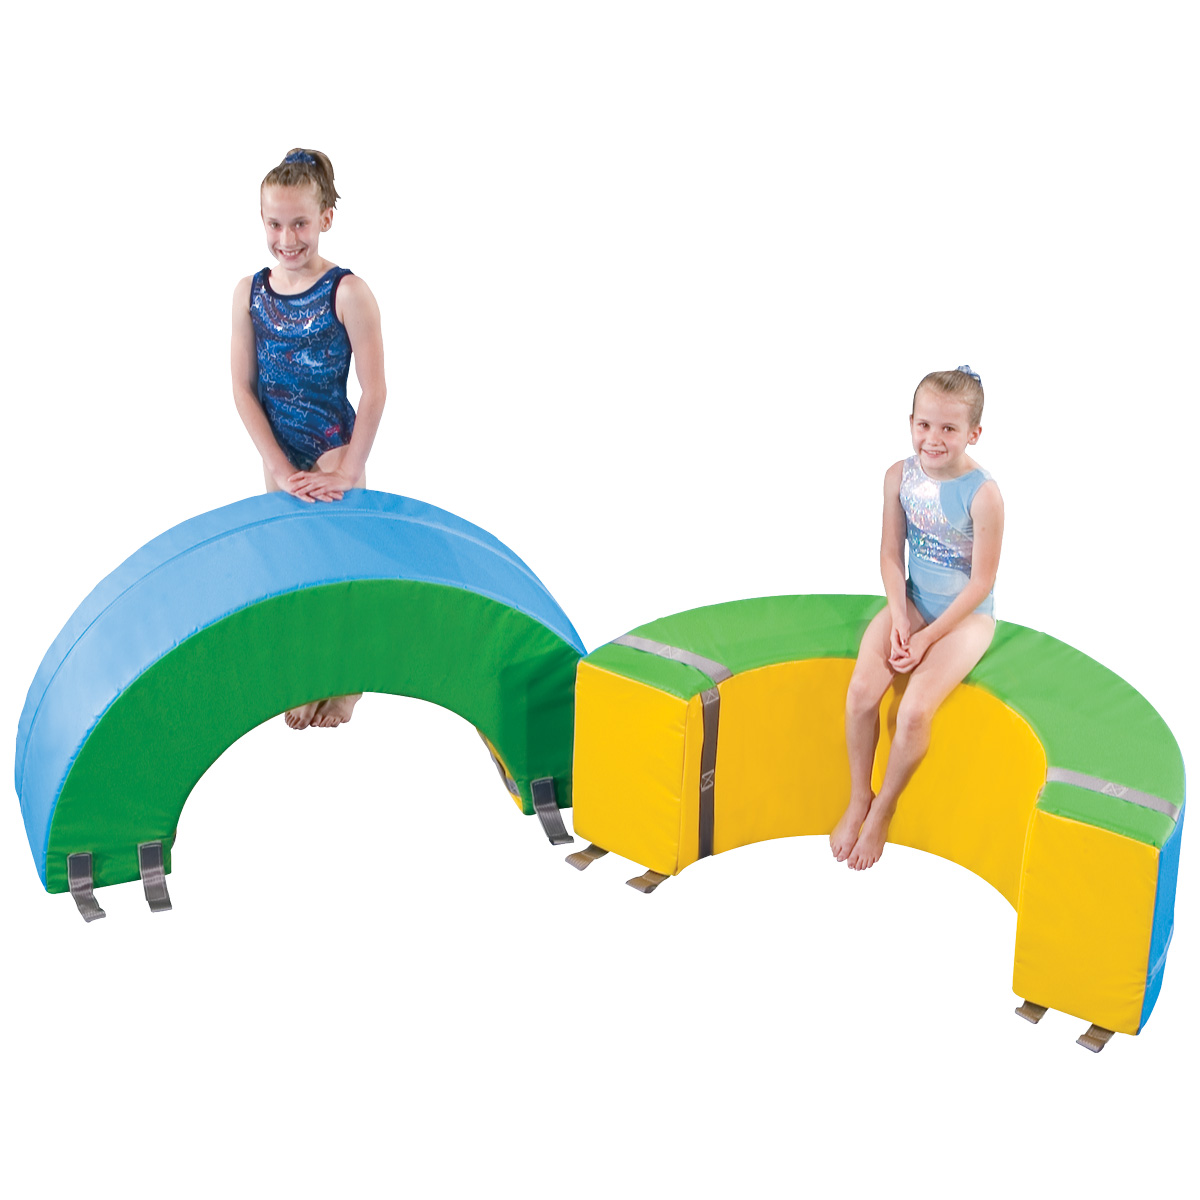 gymnasts with donut mats set